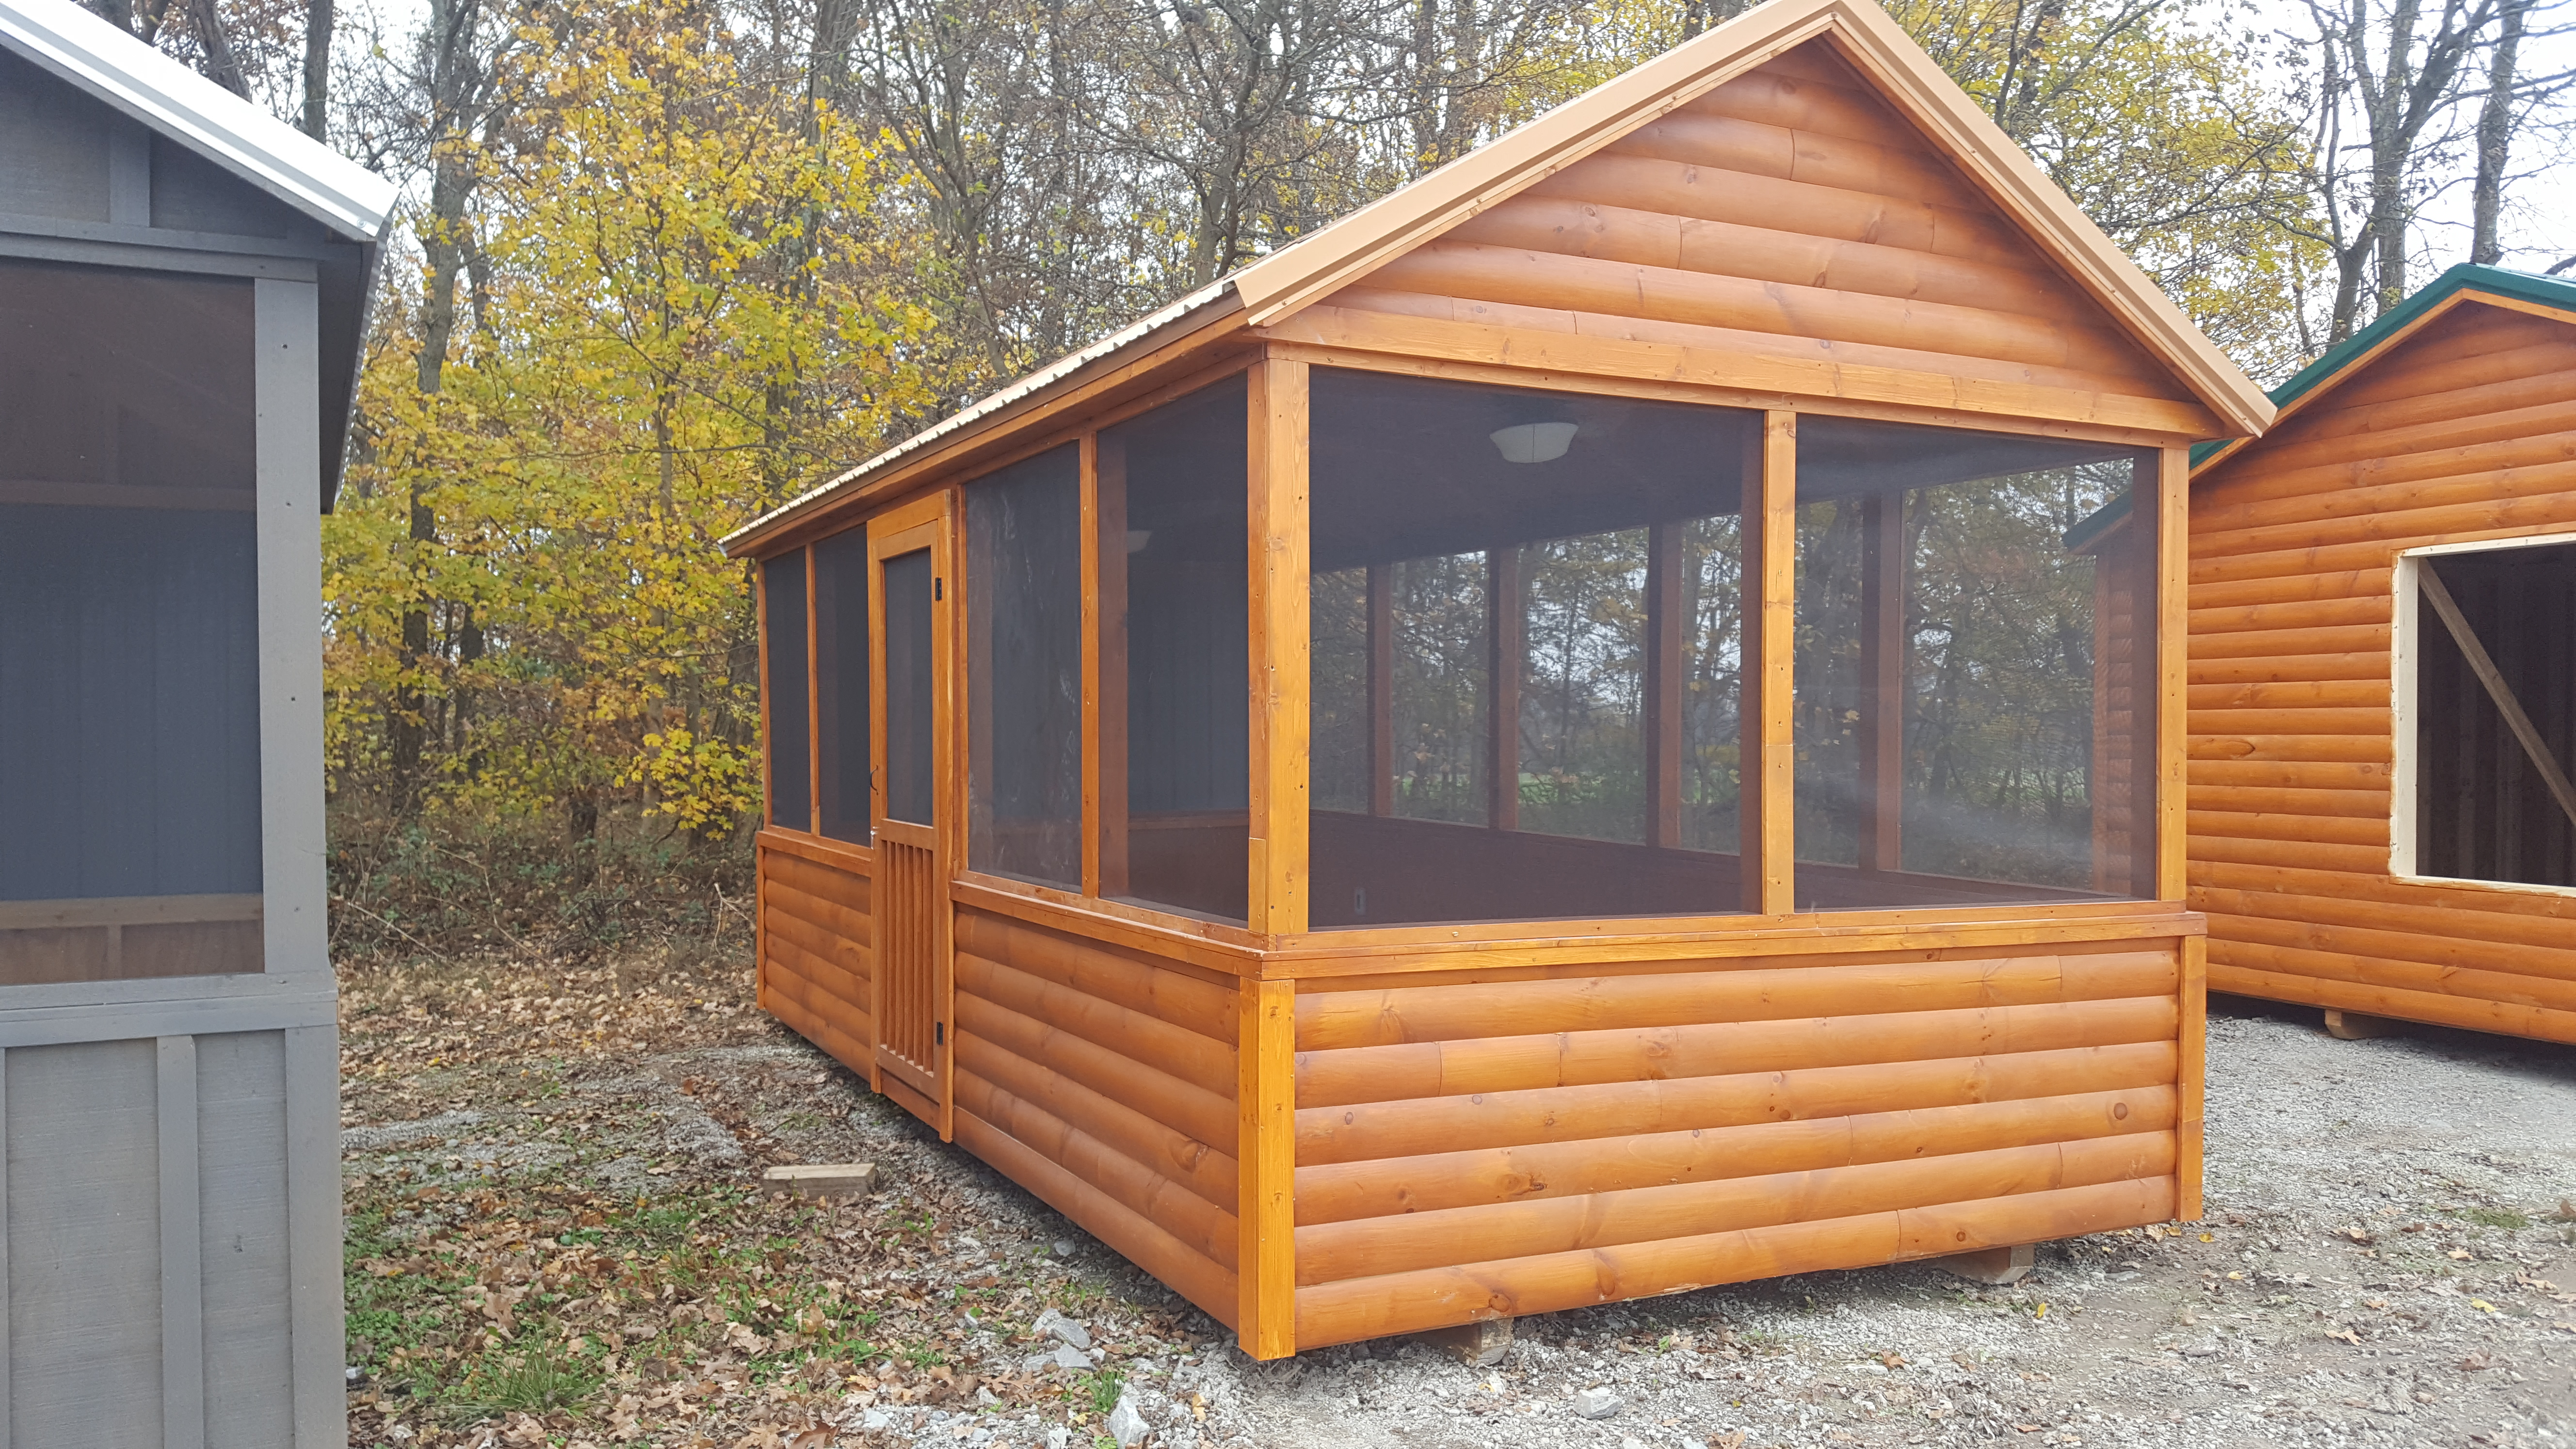 dining log cabins kitchen park vacation rent rental property for estes mounticello redawning in to cabin